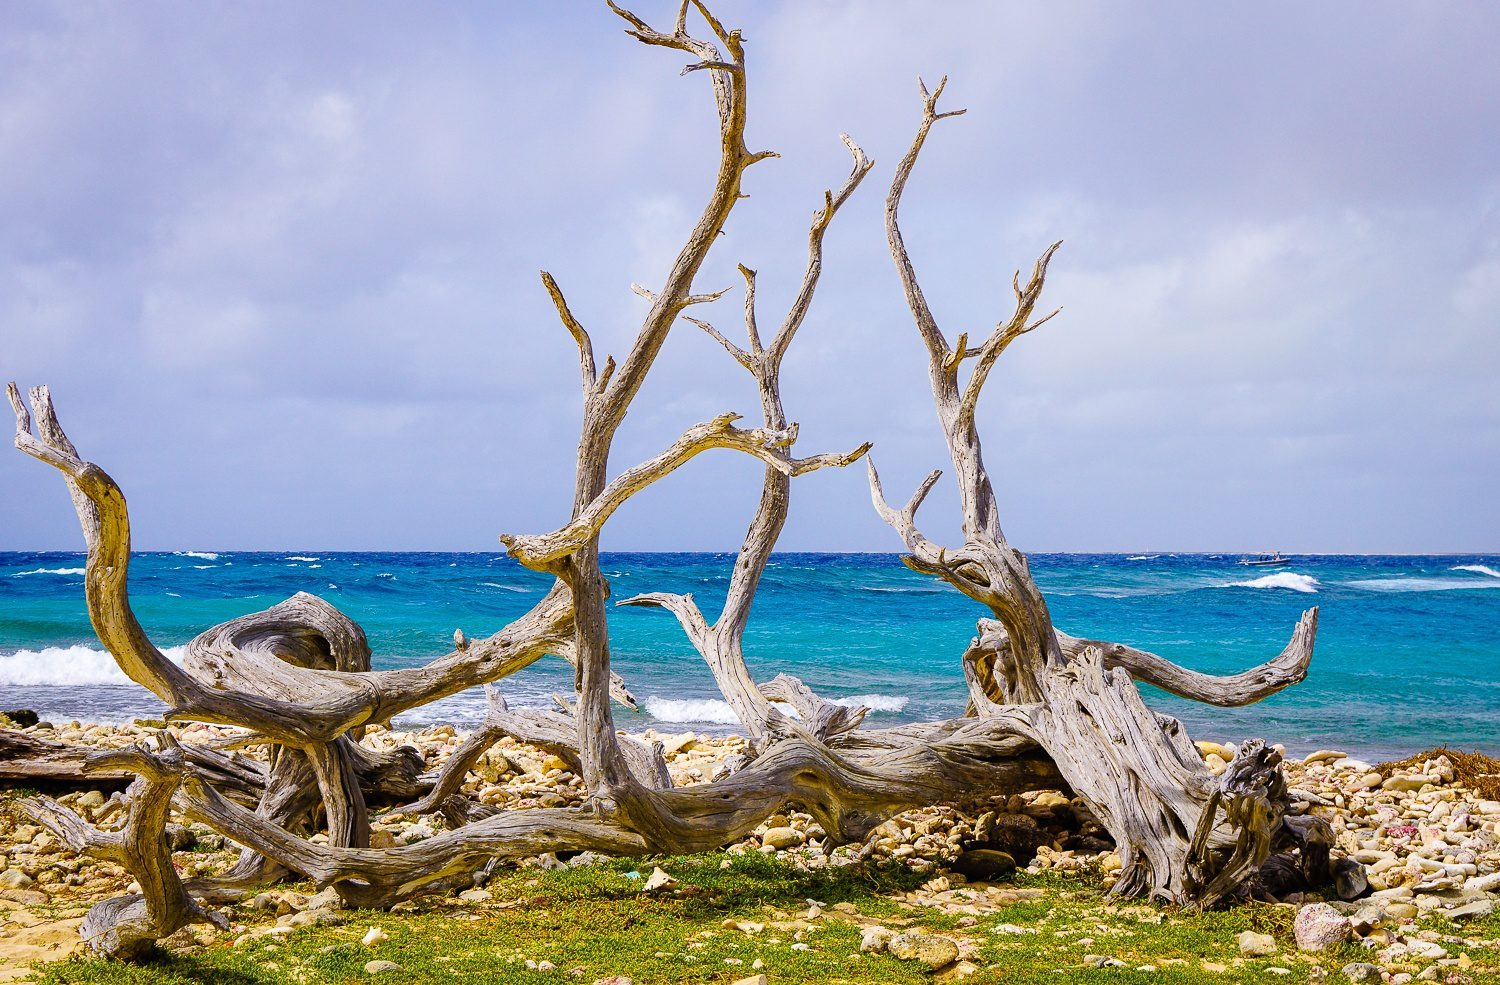 Twisted branches in front of bright teal ocean.